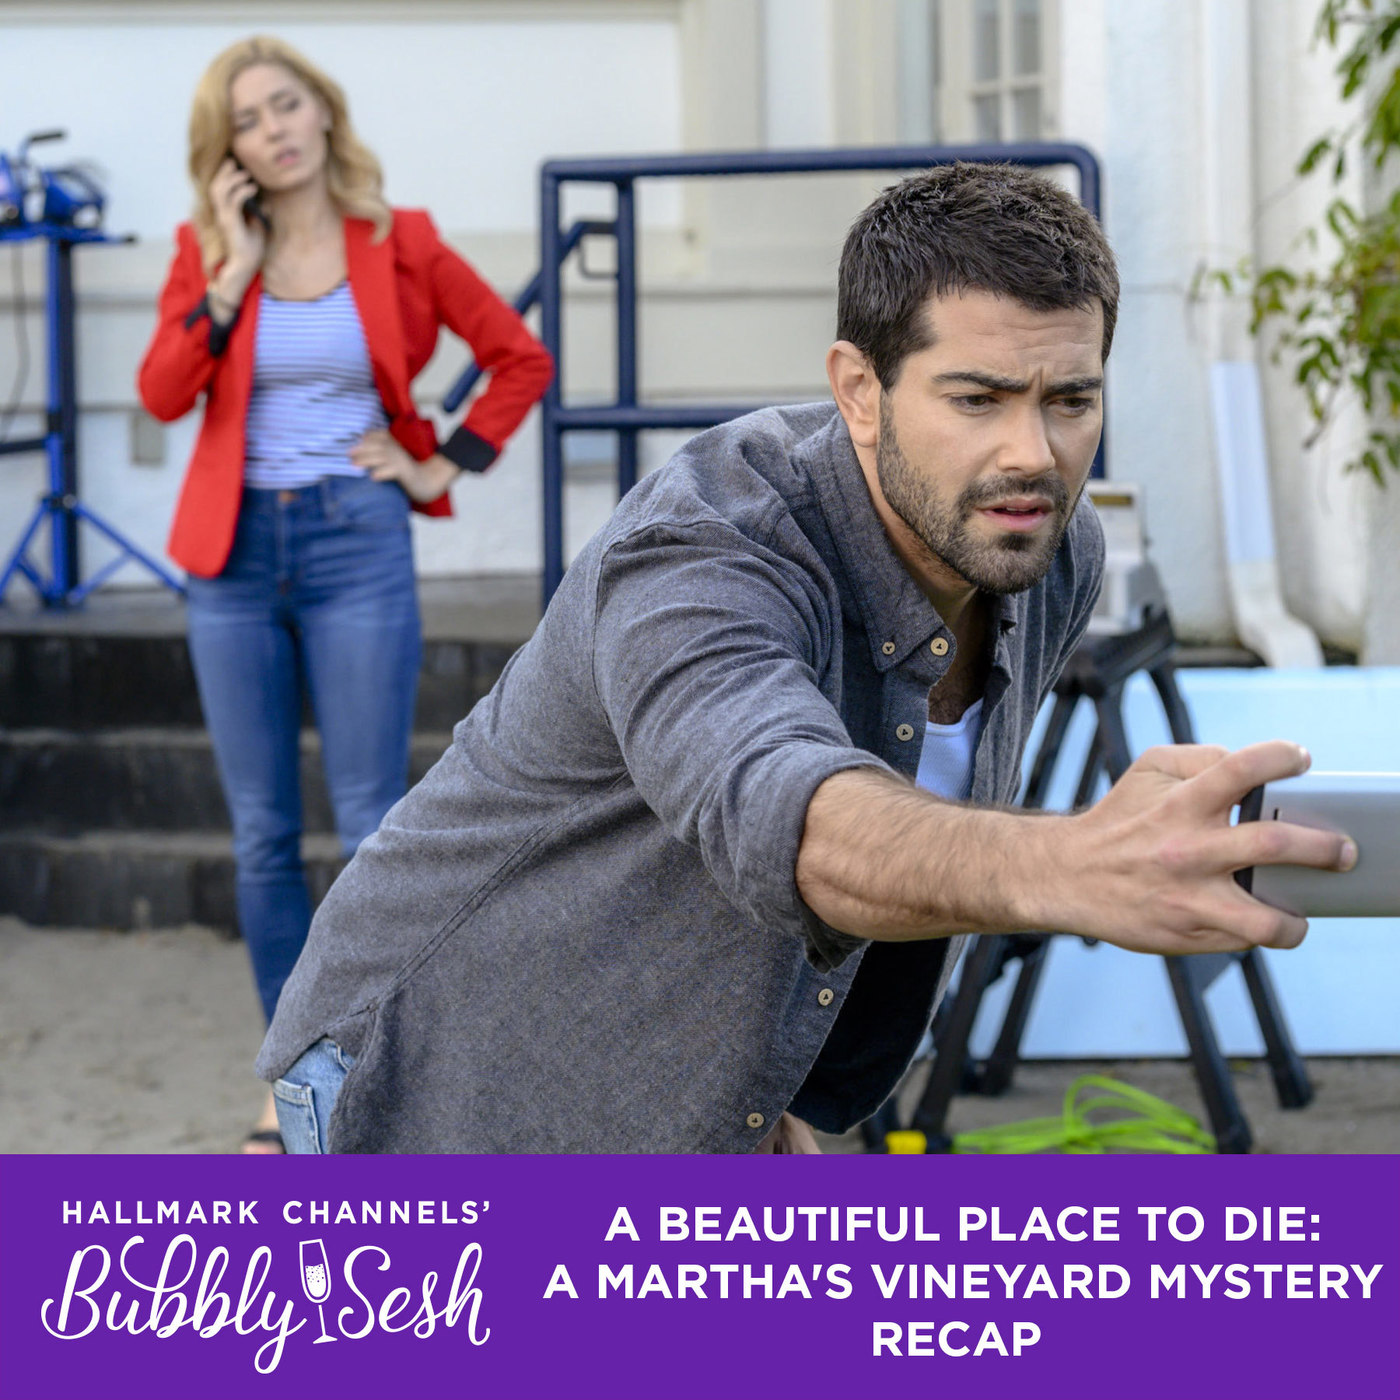 A Beautiful Place to Die: A Martha's Vineyard Mystery Recap